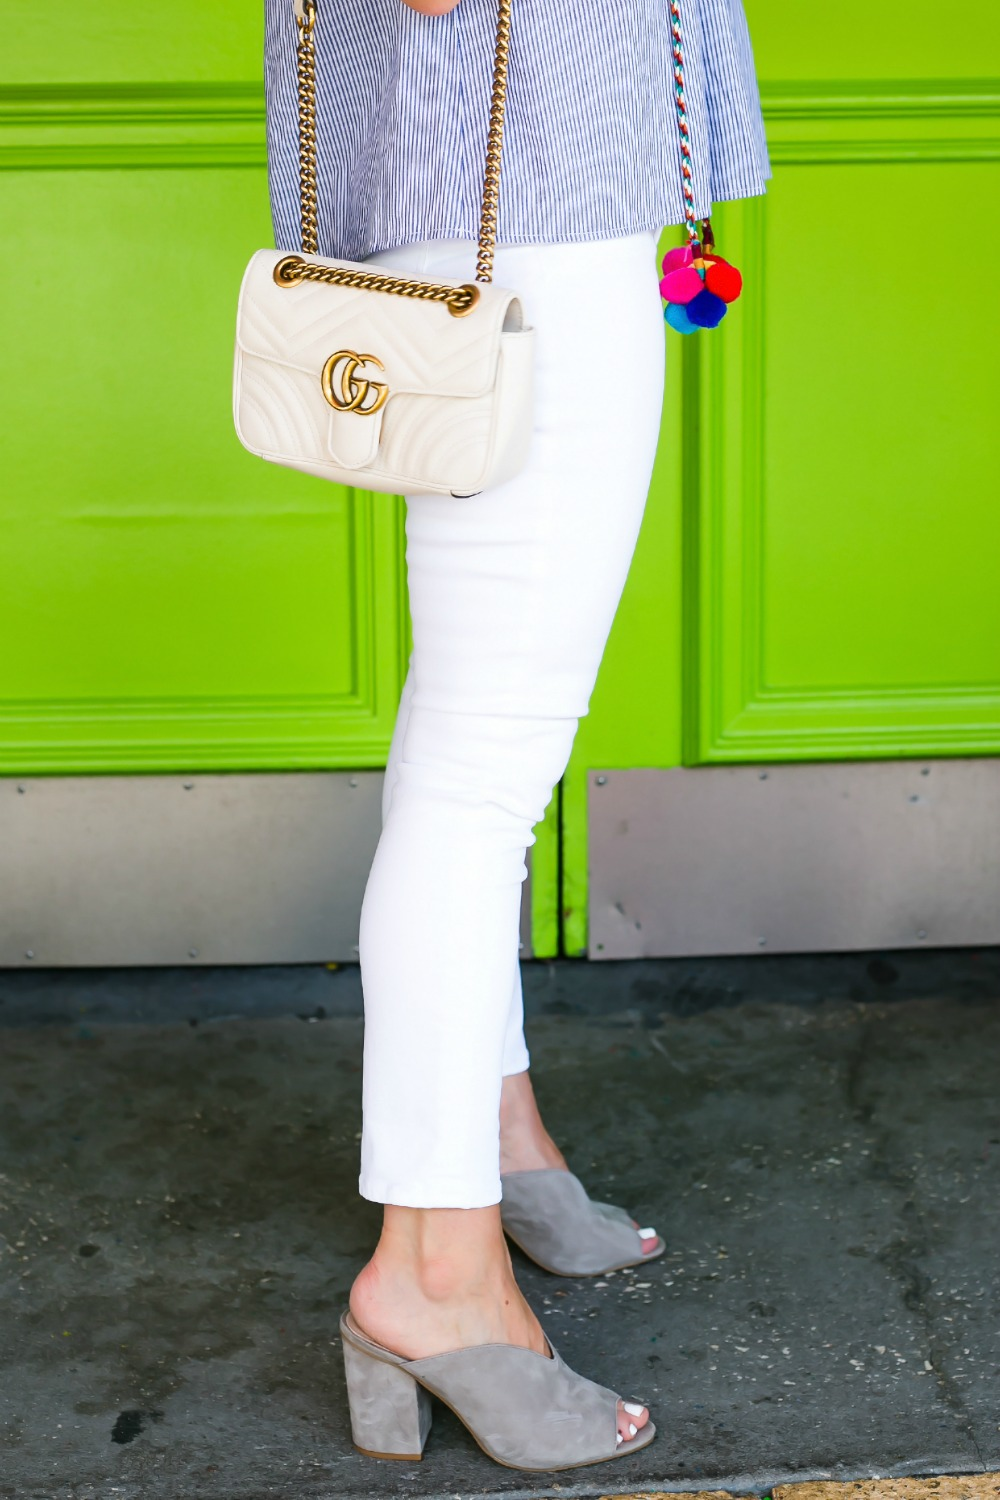 gucci bag - Cutest $17 Summer Top, Basically Ever featured by popular Florida style blogger The Modern Savvy